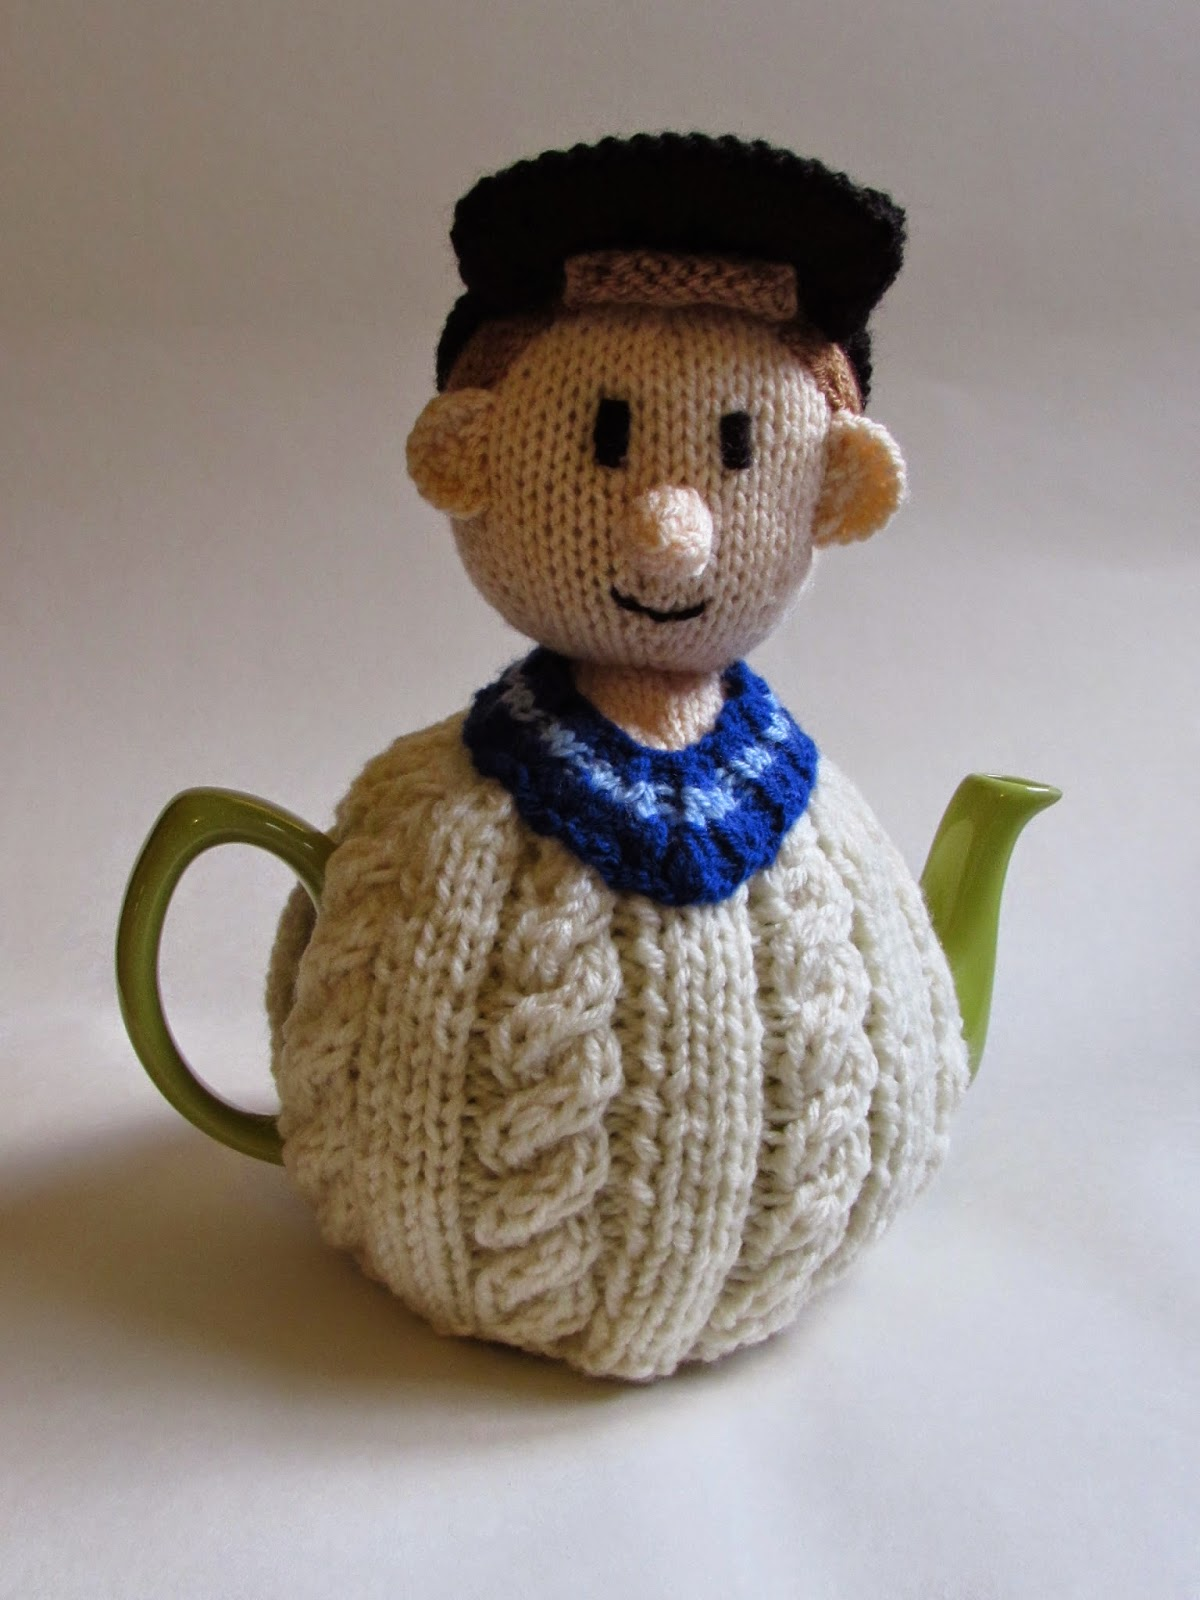 Cricketer knitting pattern